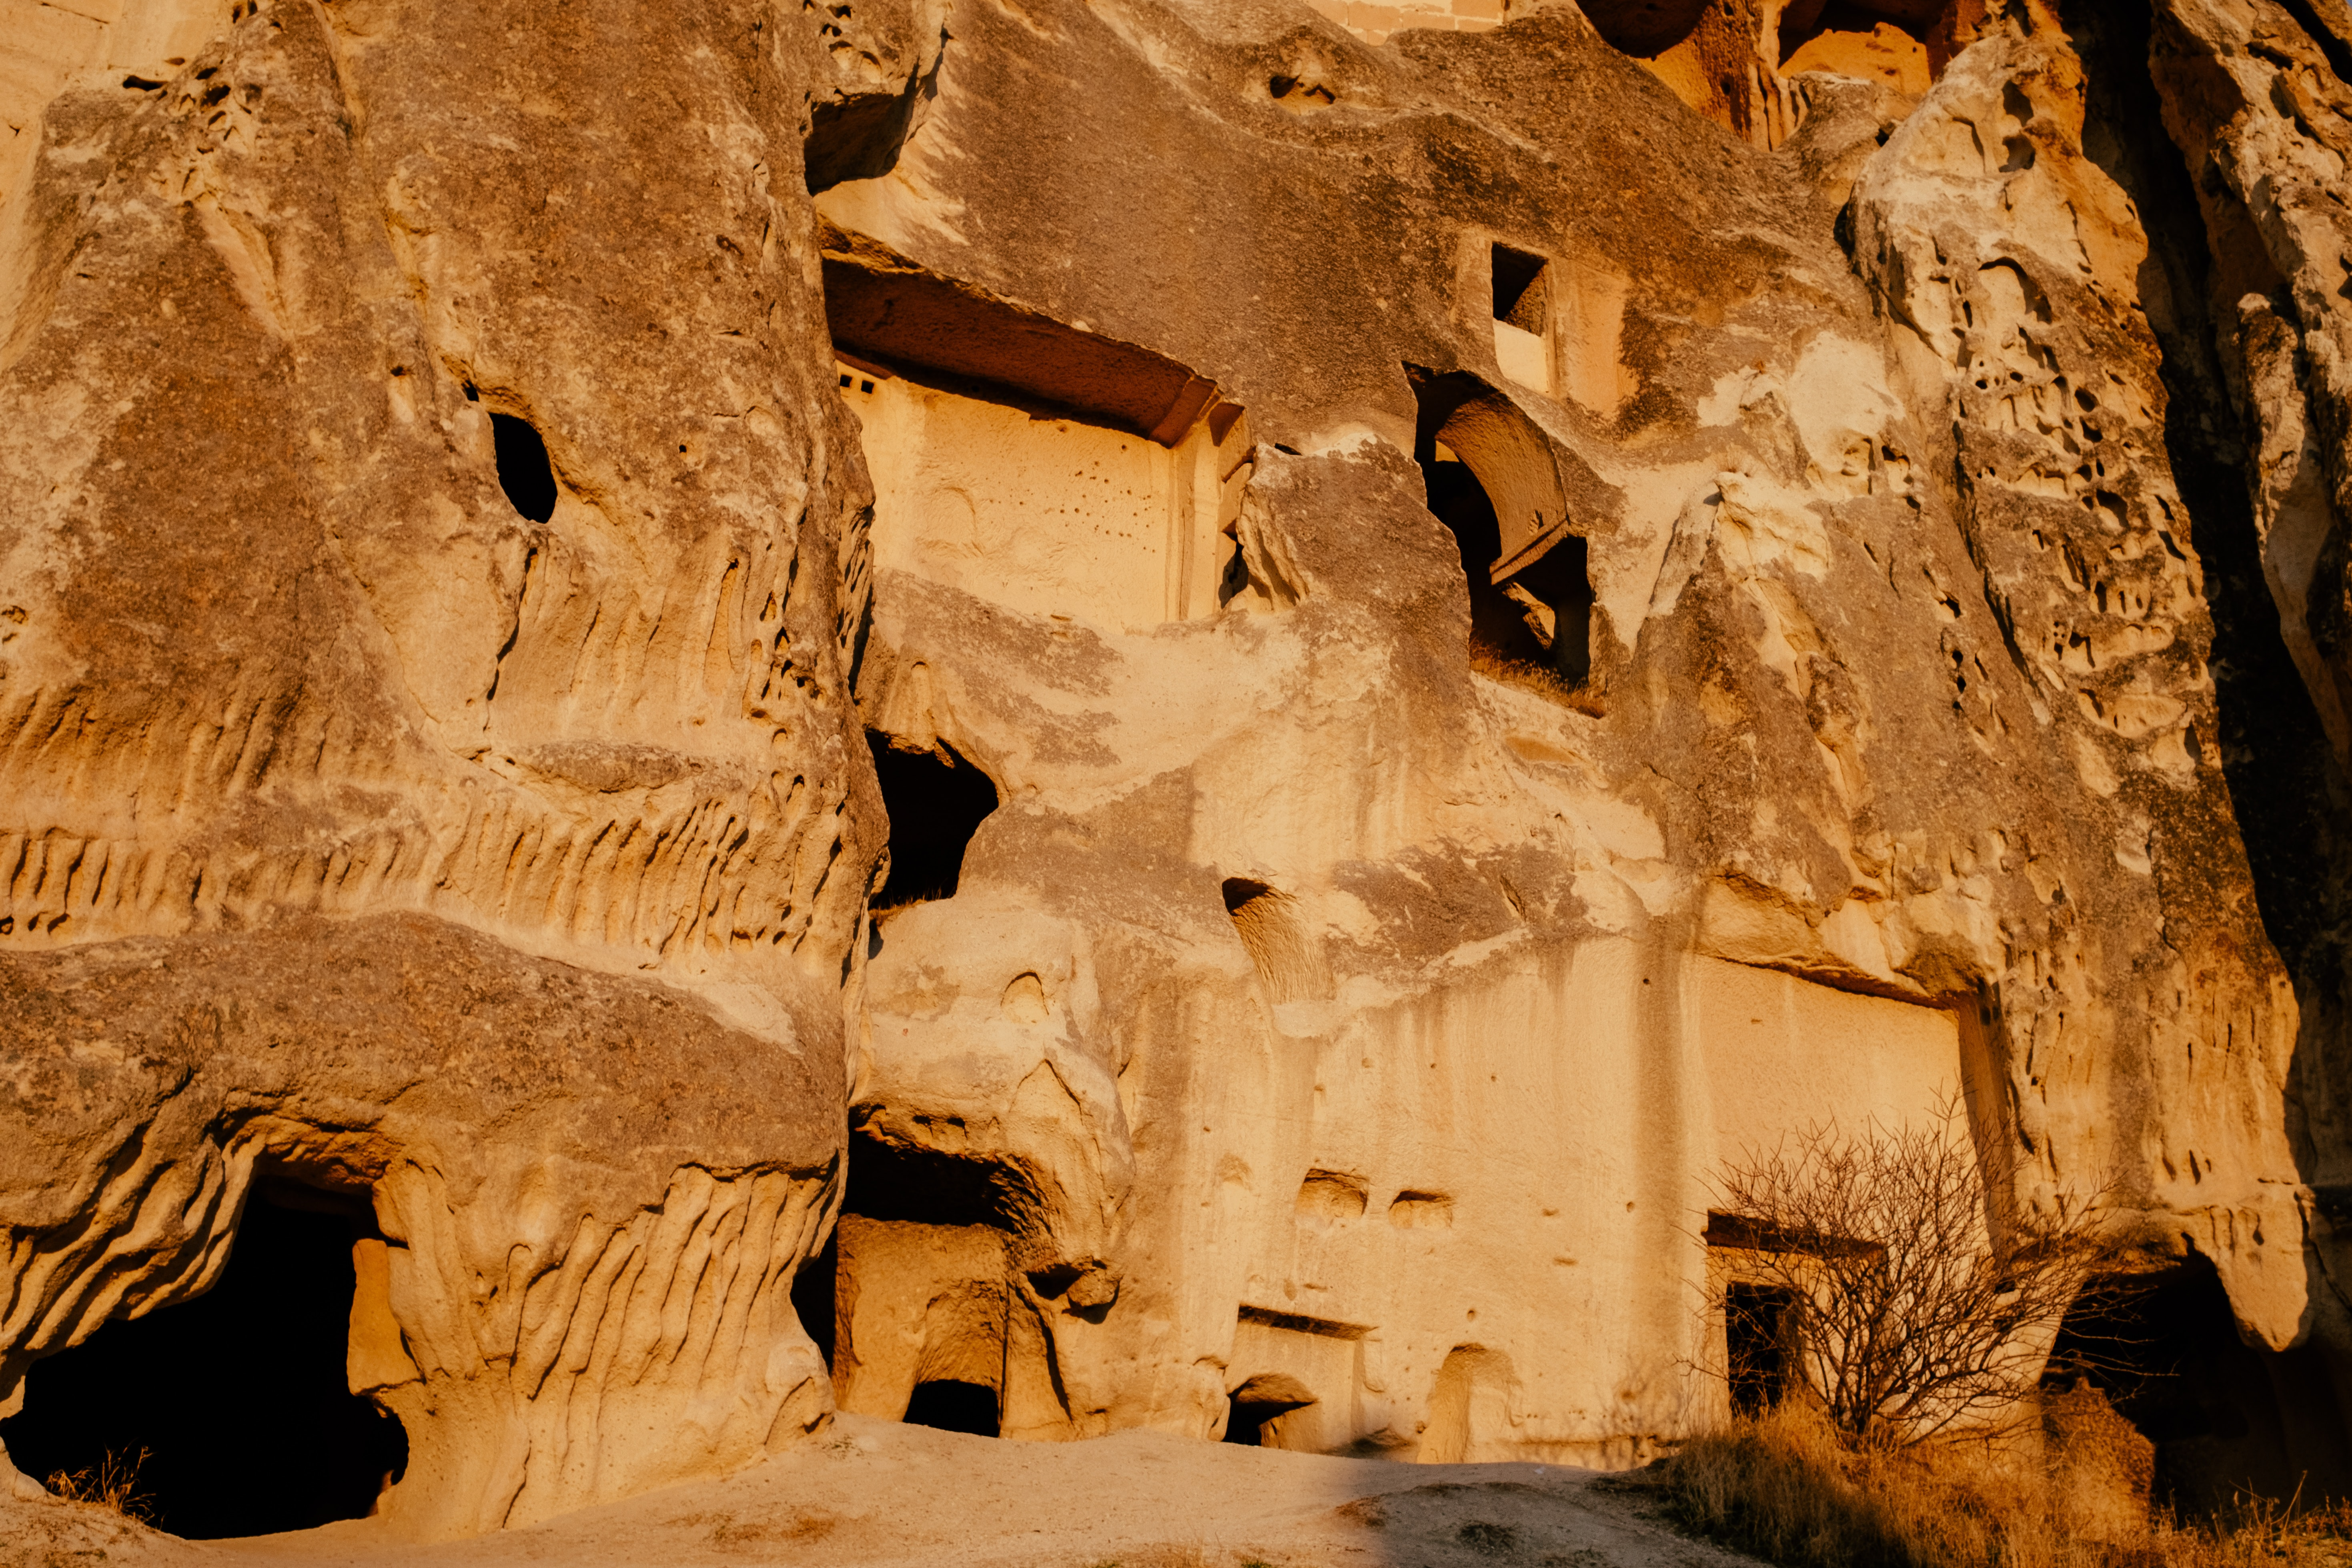 Turkey Outdoor Adventures and Cultural Tours